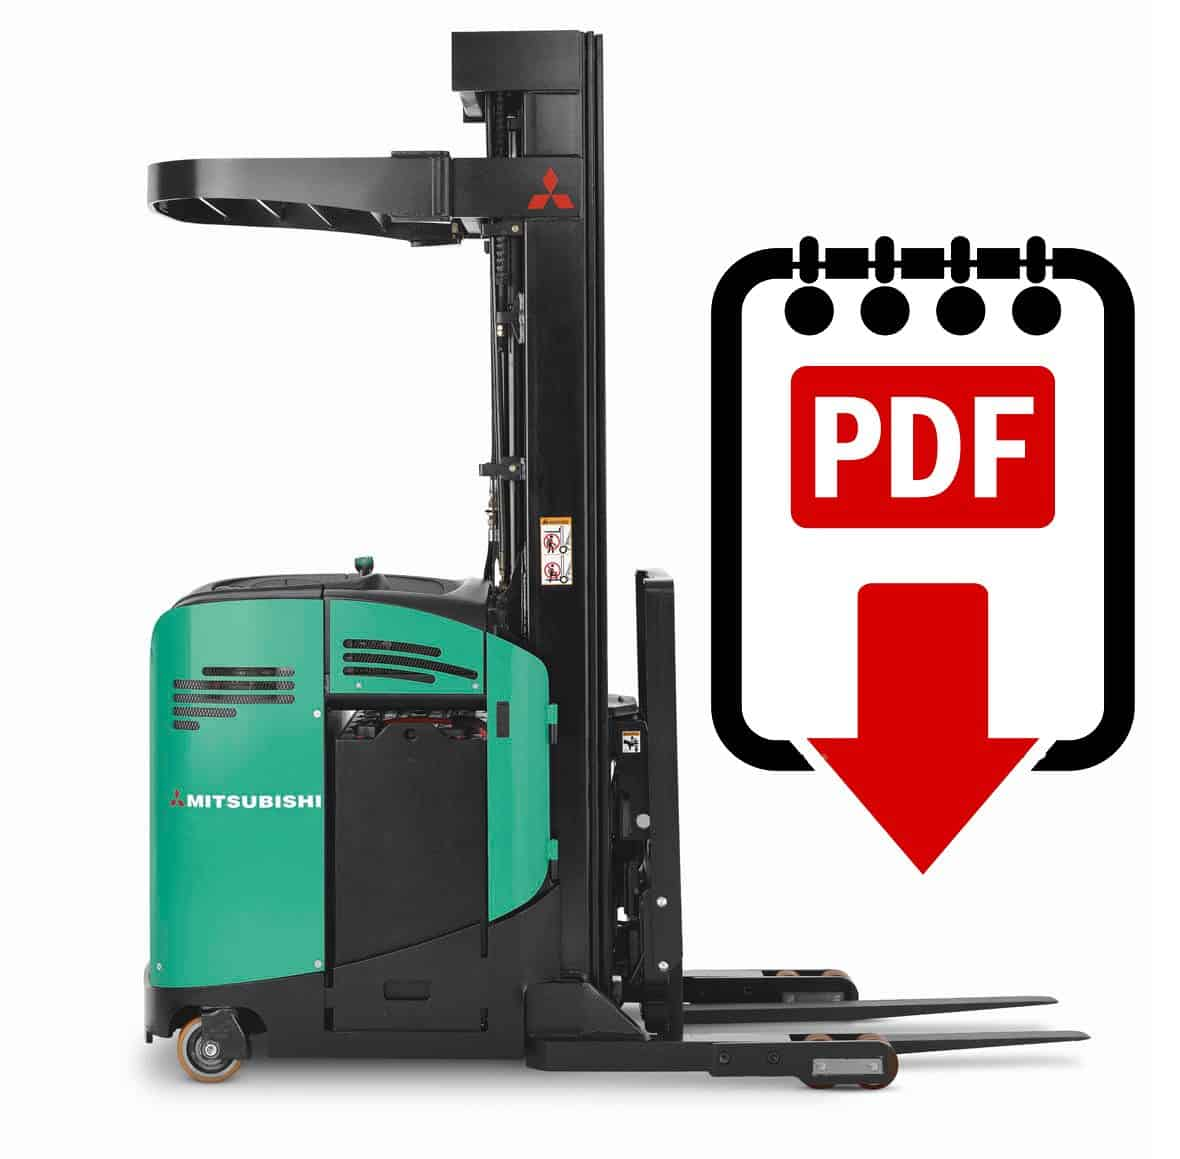 Mitsubishi esr15n operator manual mitsubishi array mitsubishi forklift edr13n 36v series manuals download pdfs instantly rh warehouseiq fandeluxe Images